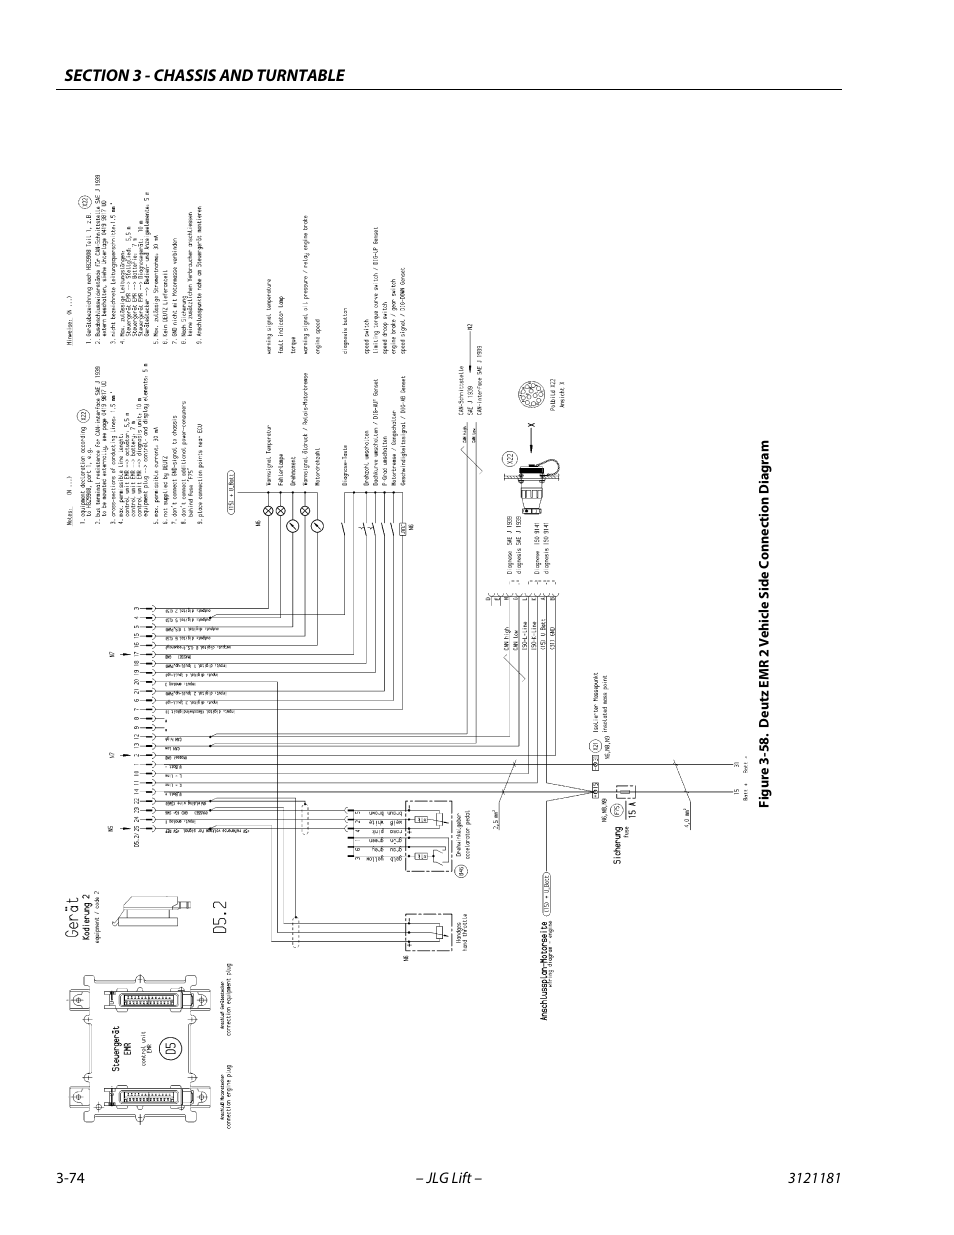 deutz emr 2 vehicle side connection diagram